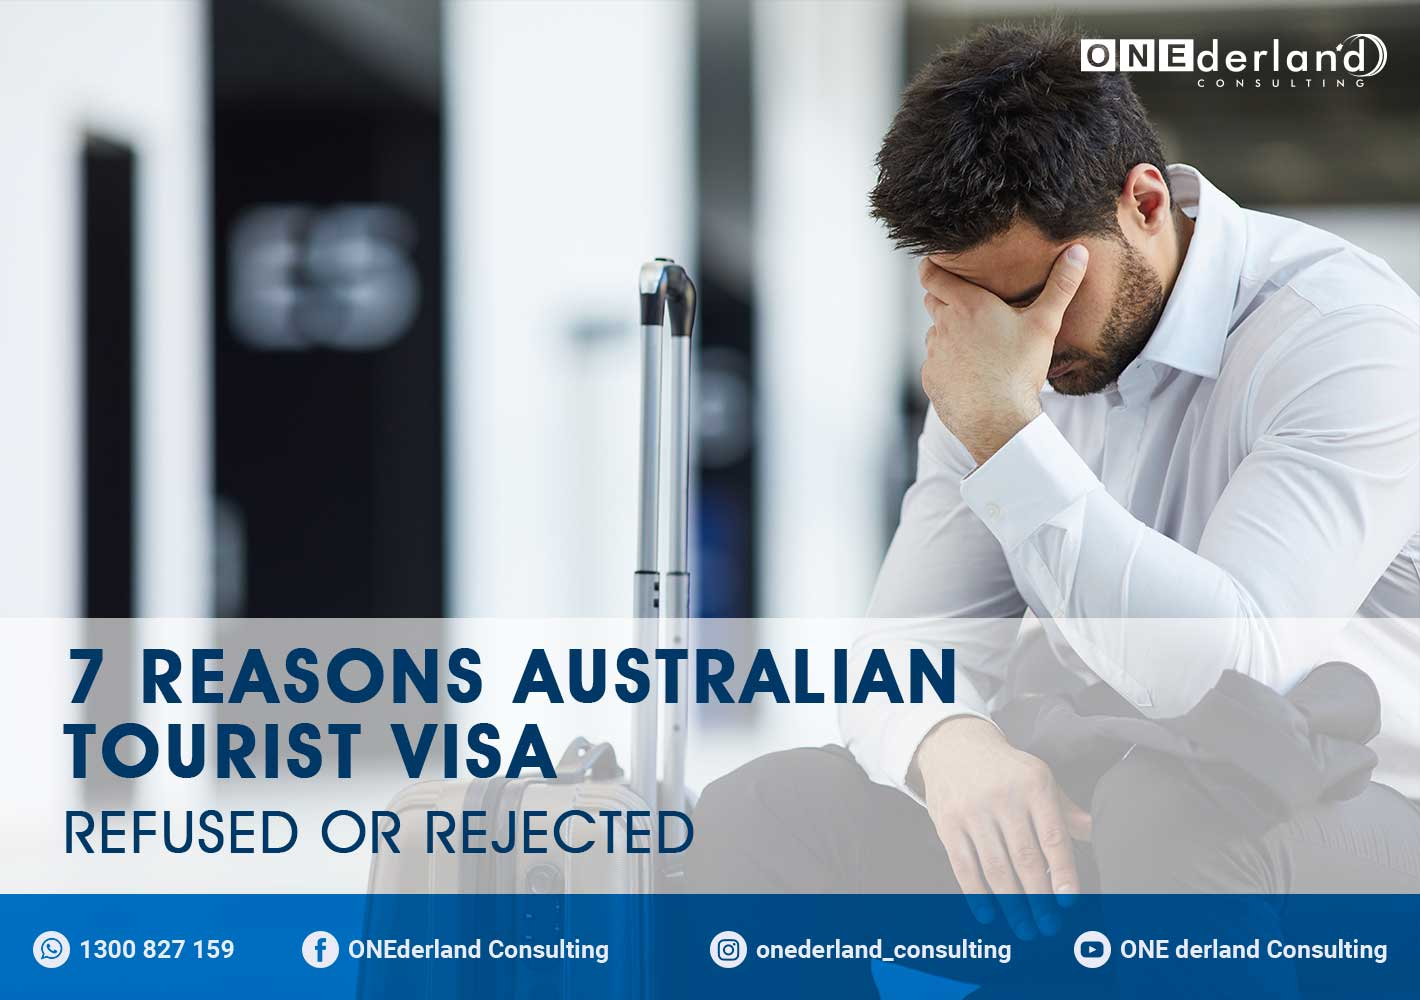 7 Reasons Australian Tourist Visa Refused or Rejected